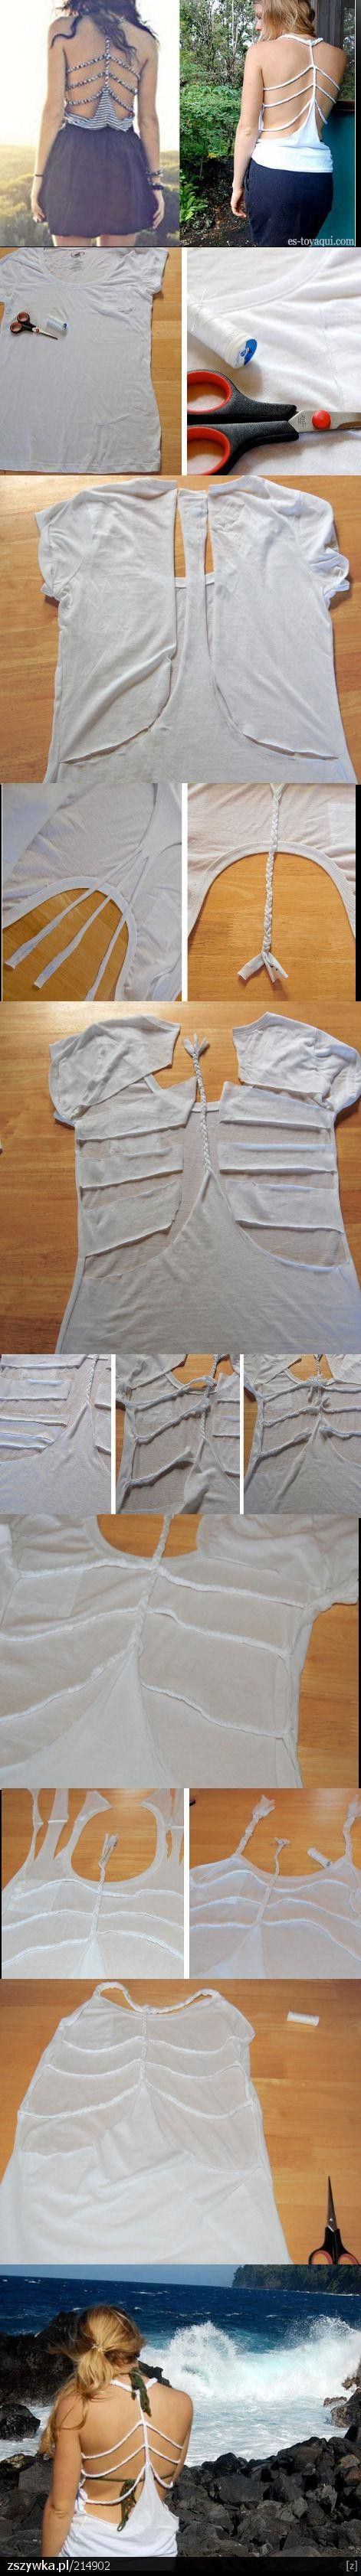 T-shirt Cutting Ideas Teen Summer Reading : Upcycled T-shirt Design ~ Enhance your fashion skills and create a unique new look from a cast-off tee or a plain white one. The winning designer will win a Teen Summer Reading prize. Check out our events page for an event @ a CML branch near you! Visit: http://www.cmlibrary.org/programs